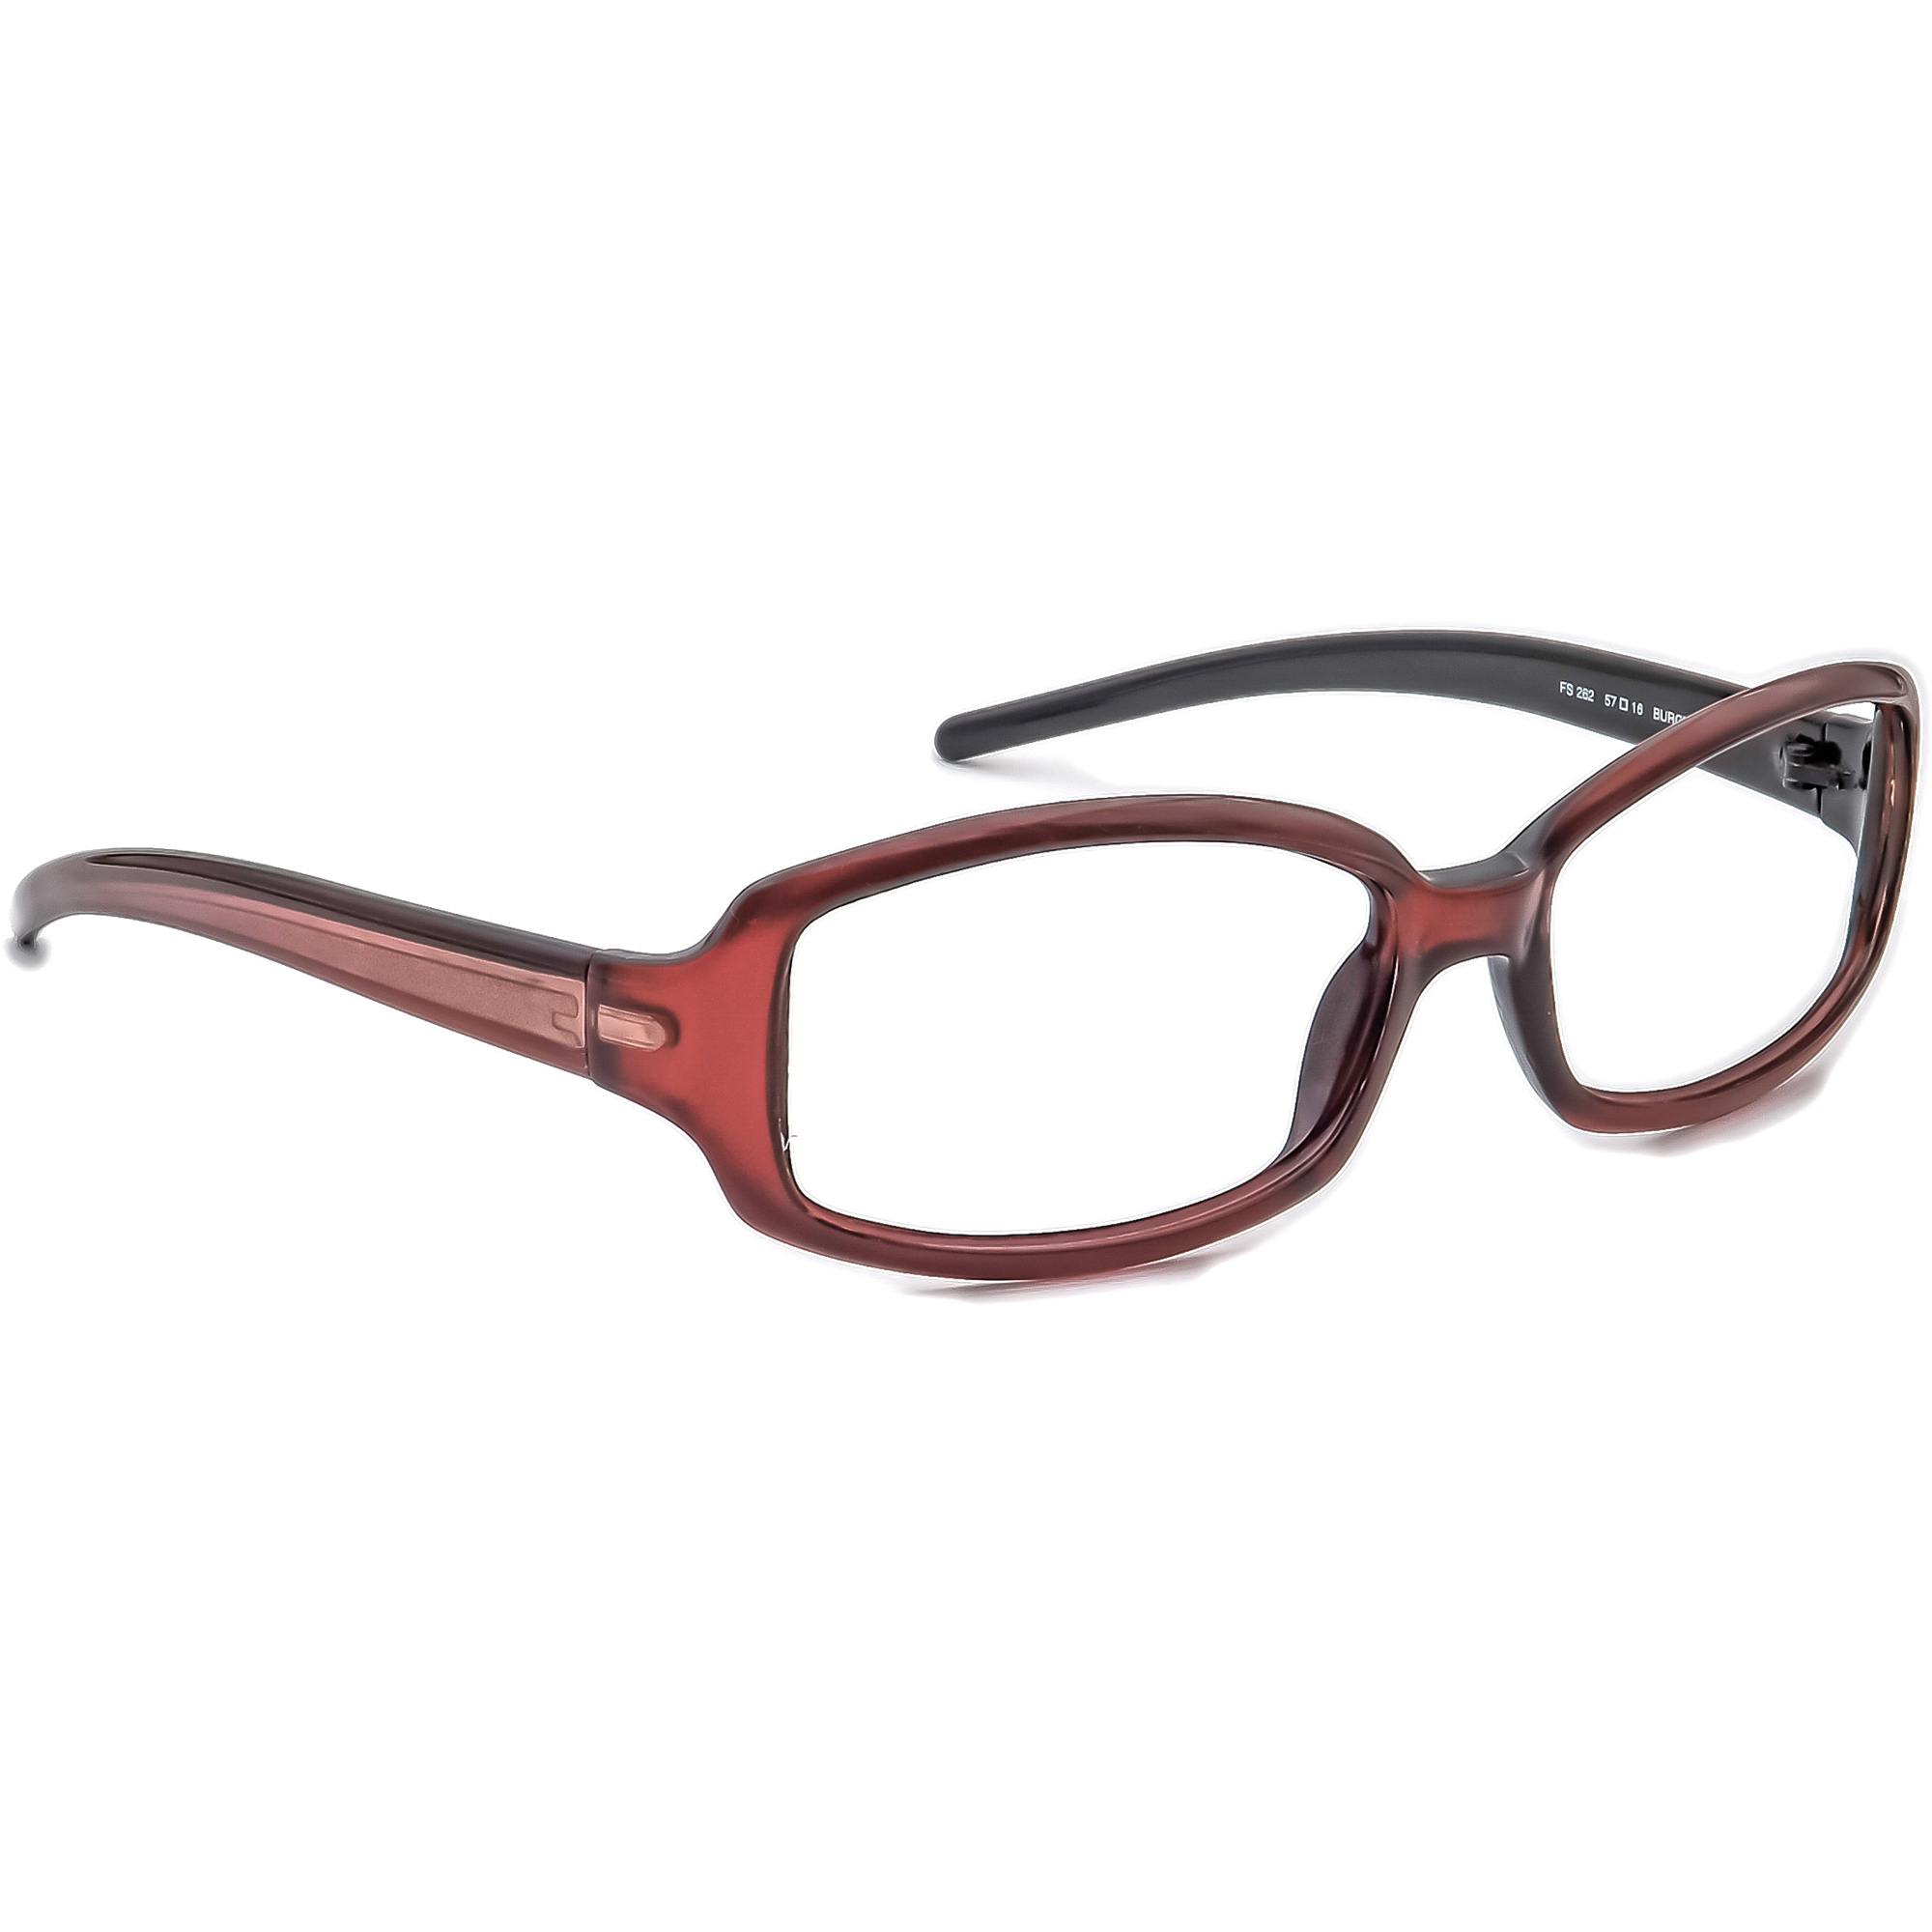 Fendi FS 262 Sunglasses Frame Only